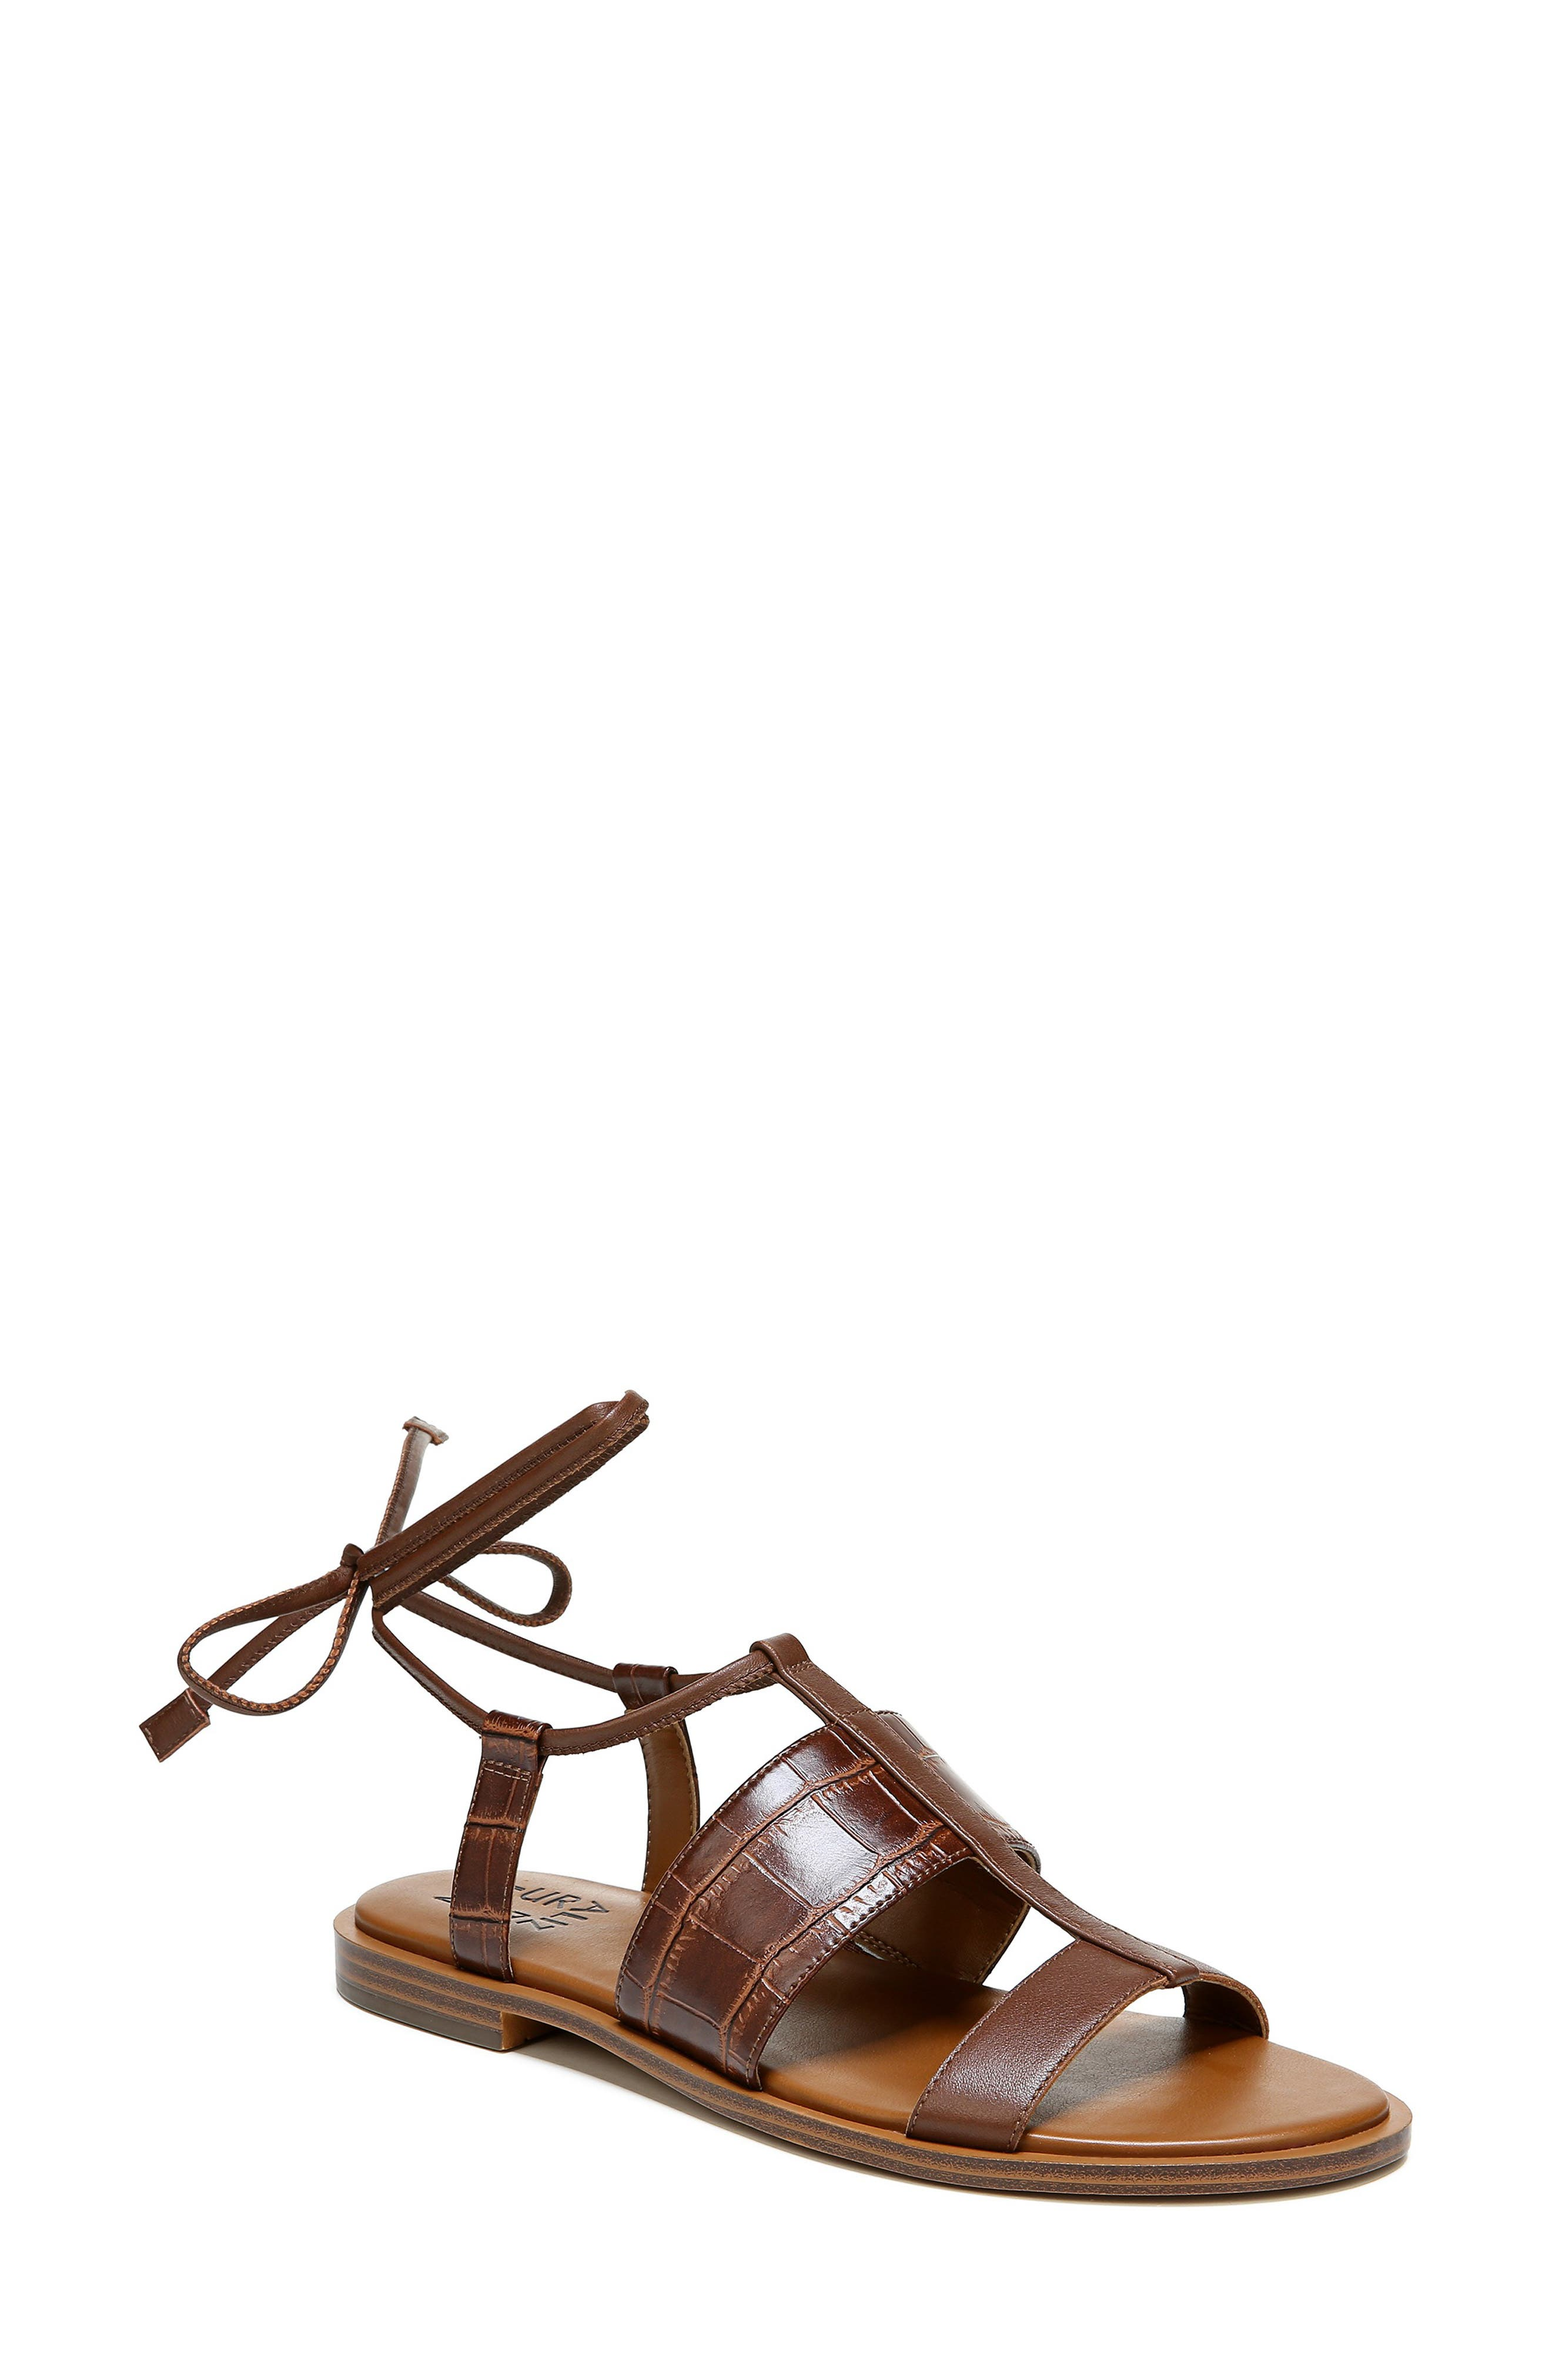 Slender, flattering ties wrap the ankle of this lightly gladiator-inspired sandal fashioned with a cushy dual-density footbed. Style Name: Naturalizer Fayee Sandal (Women). Style Number: 6015154. Available in stores.